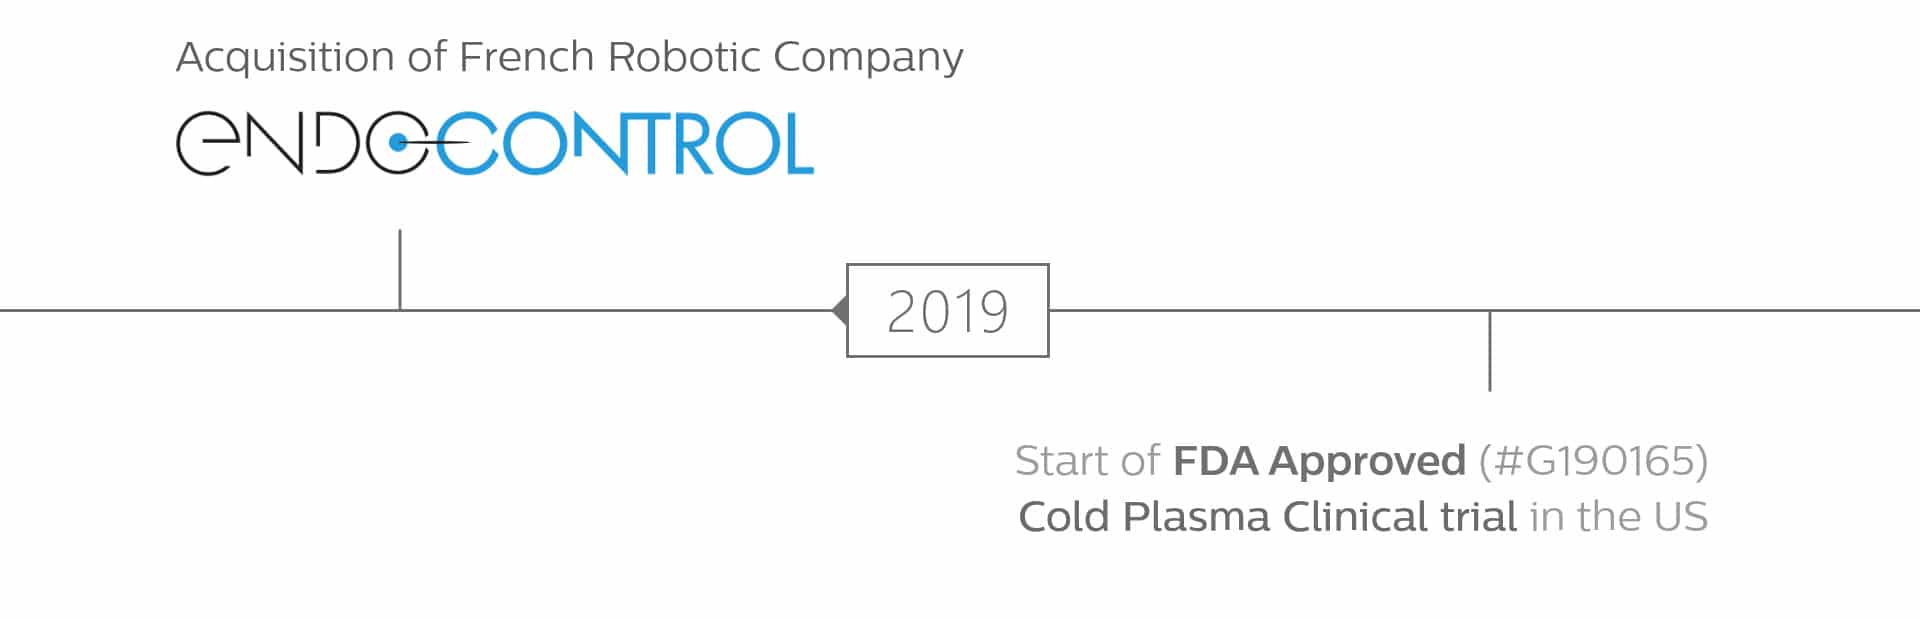 Acquisition of French robotic company, Endocontrol (May 31, 2019)